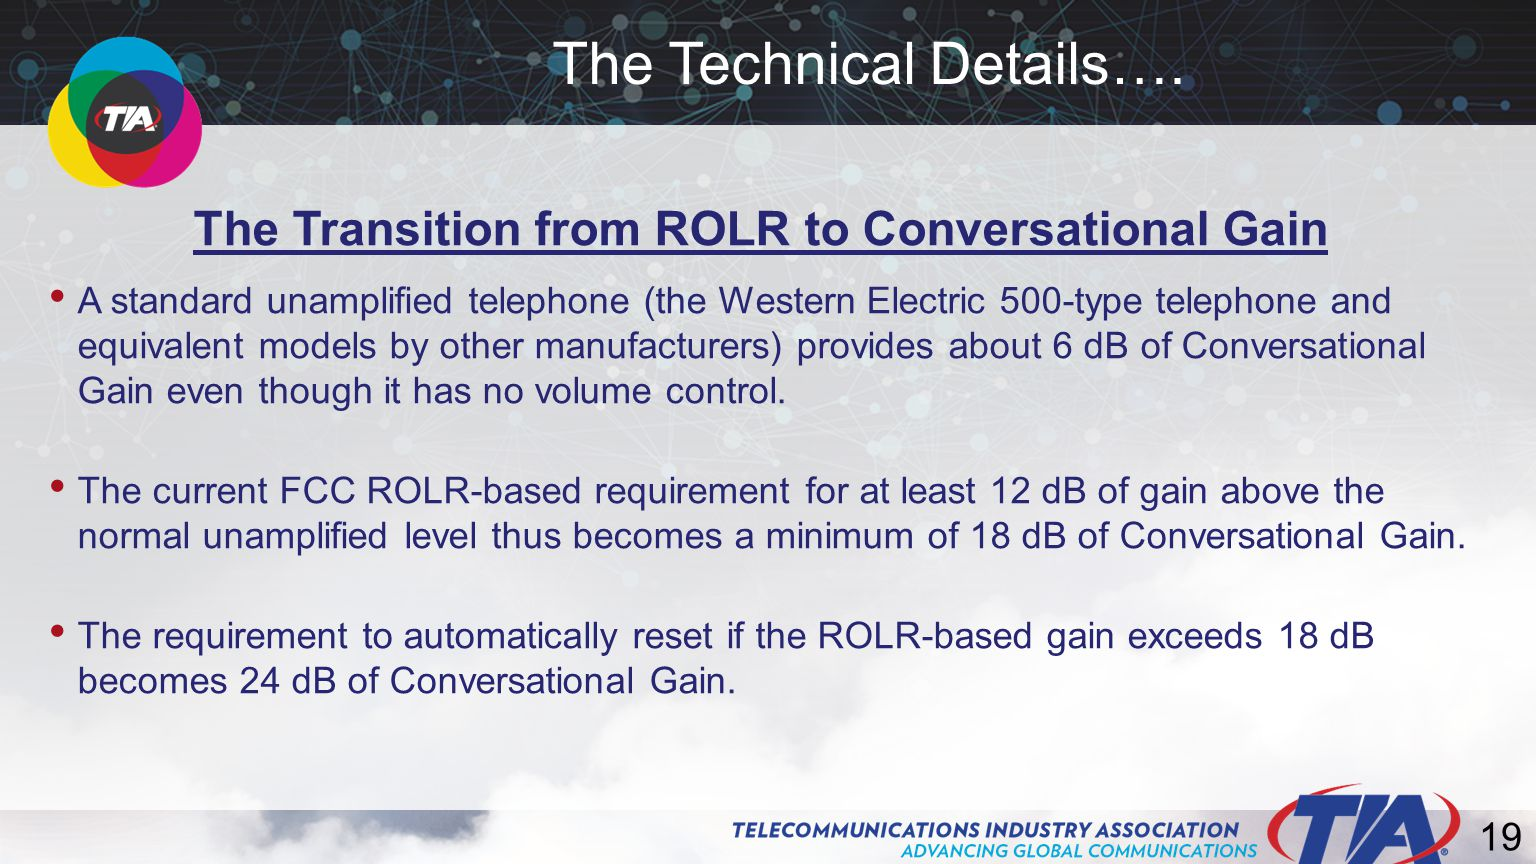 19 The Transition from ROLR to Conversational Gain A standard unamplified telephone (the Western Electric 500-type telephone and equivalent models by other manufacturers) provides about 6 dB of Conversational Gain even though it has no volume control.